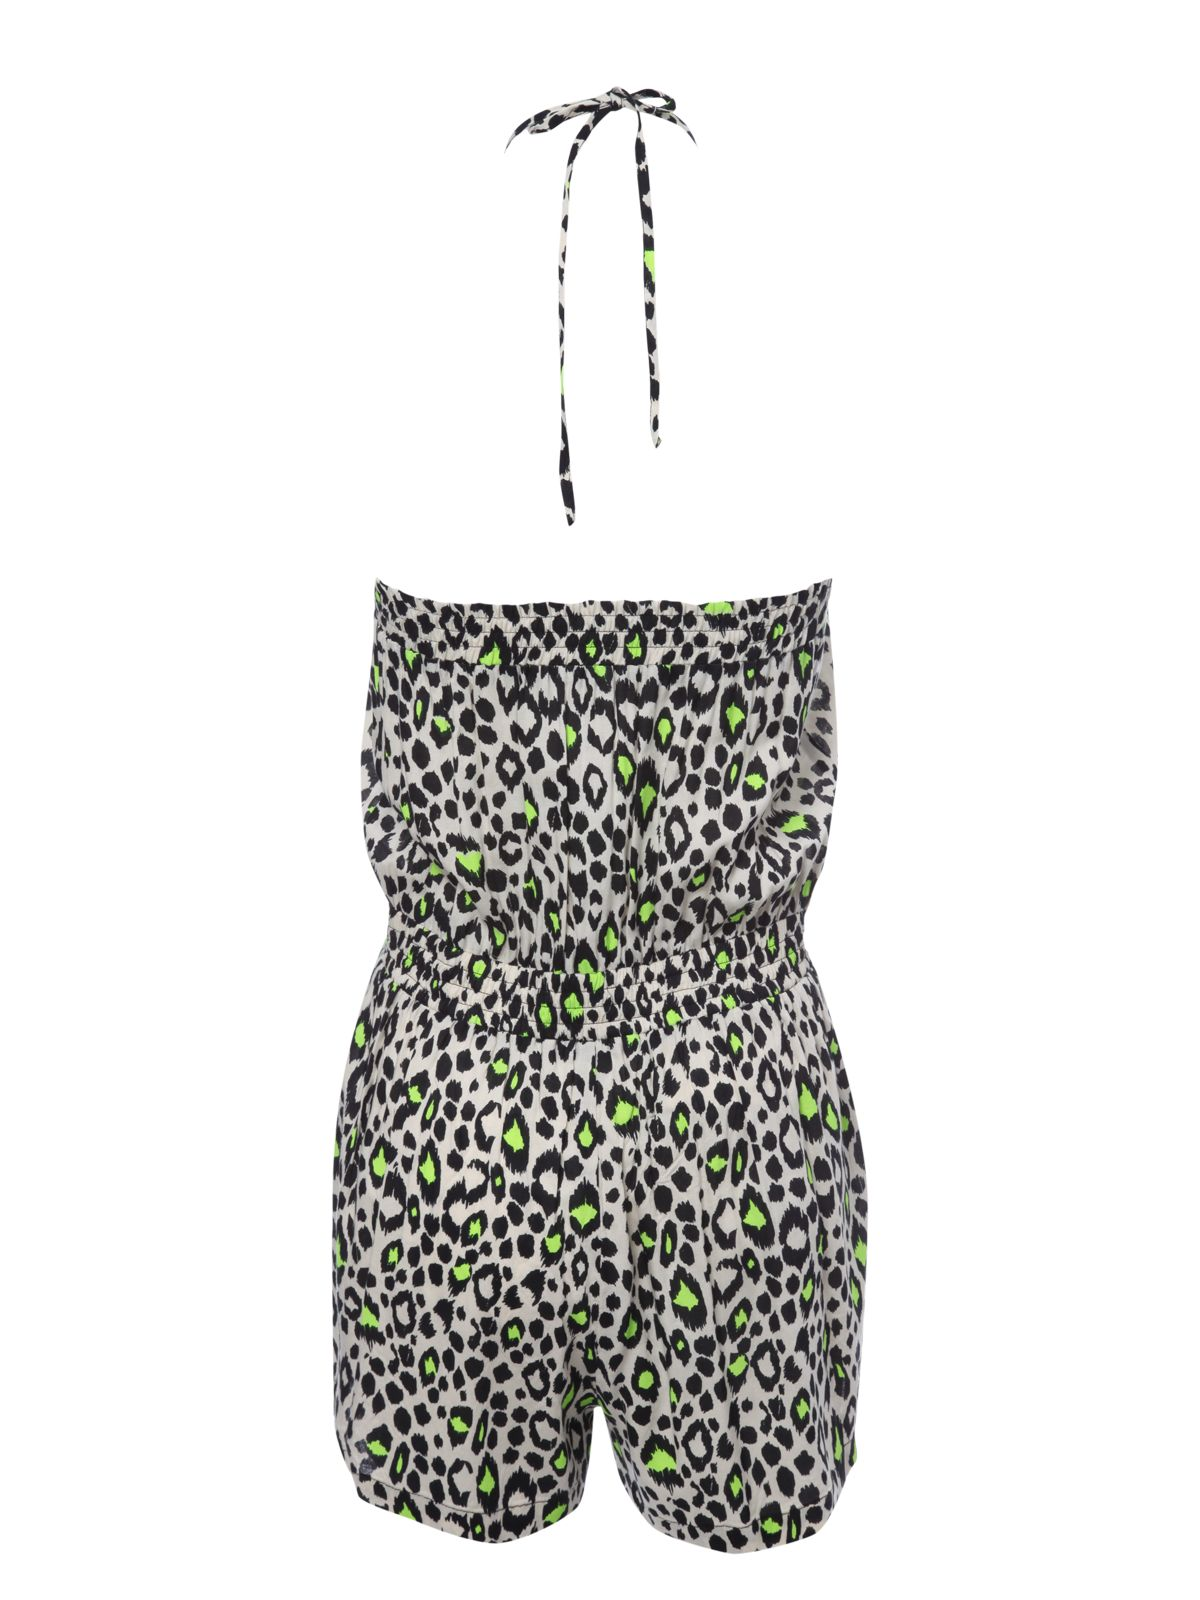 Neon animal playsuit